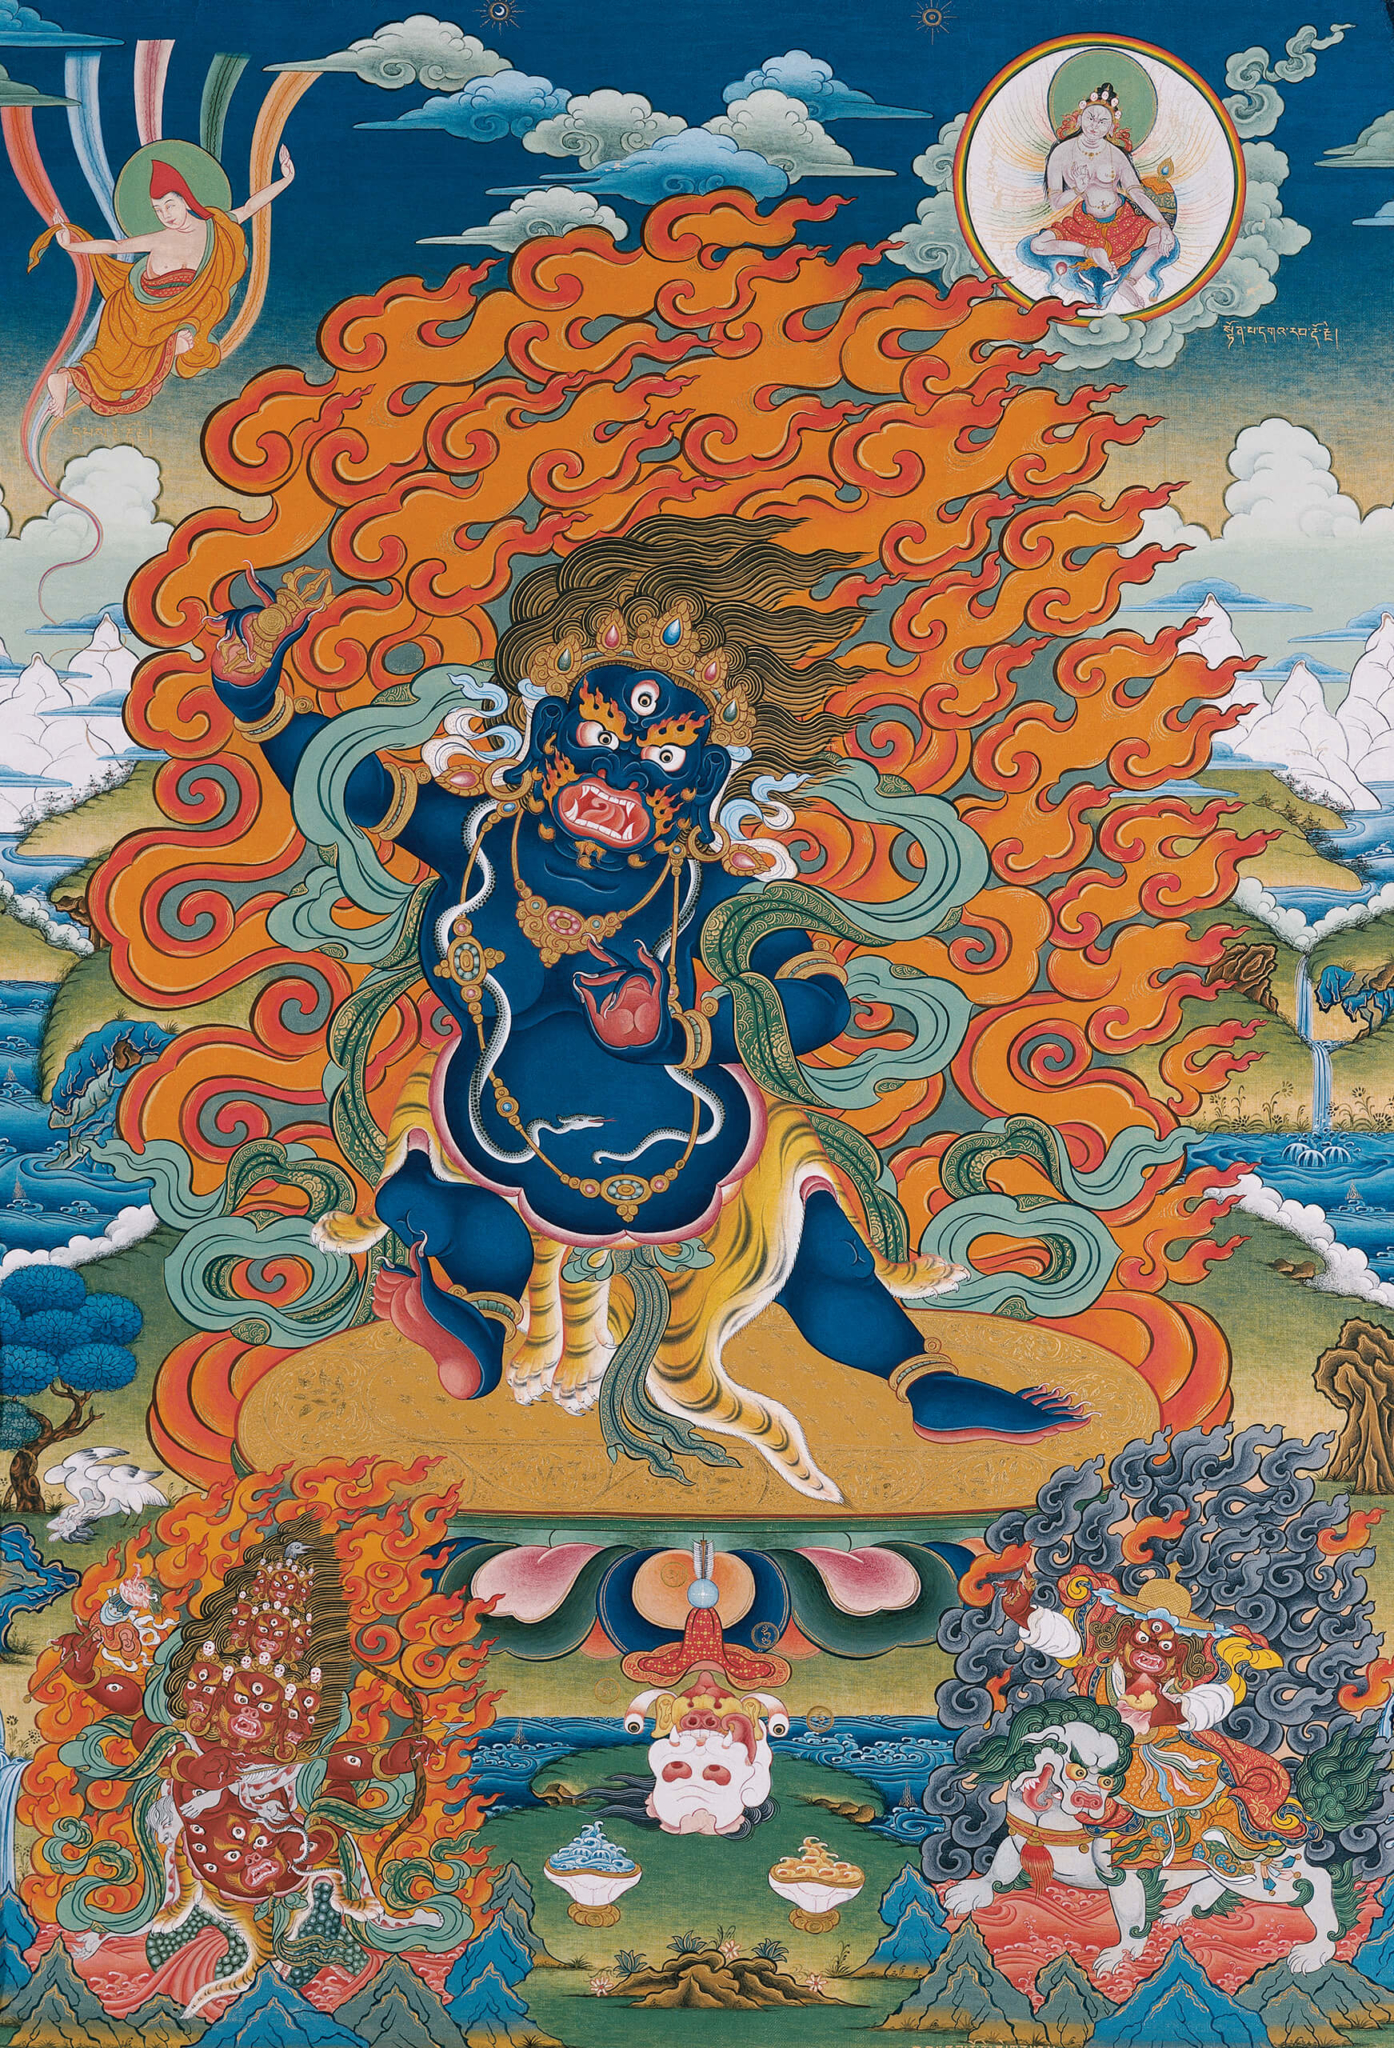 Vajrapani and guardians